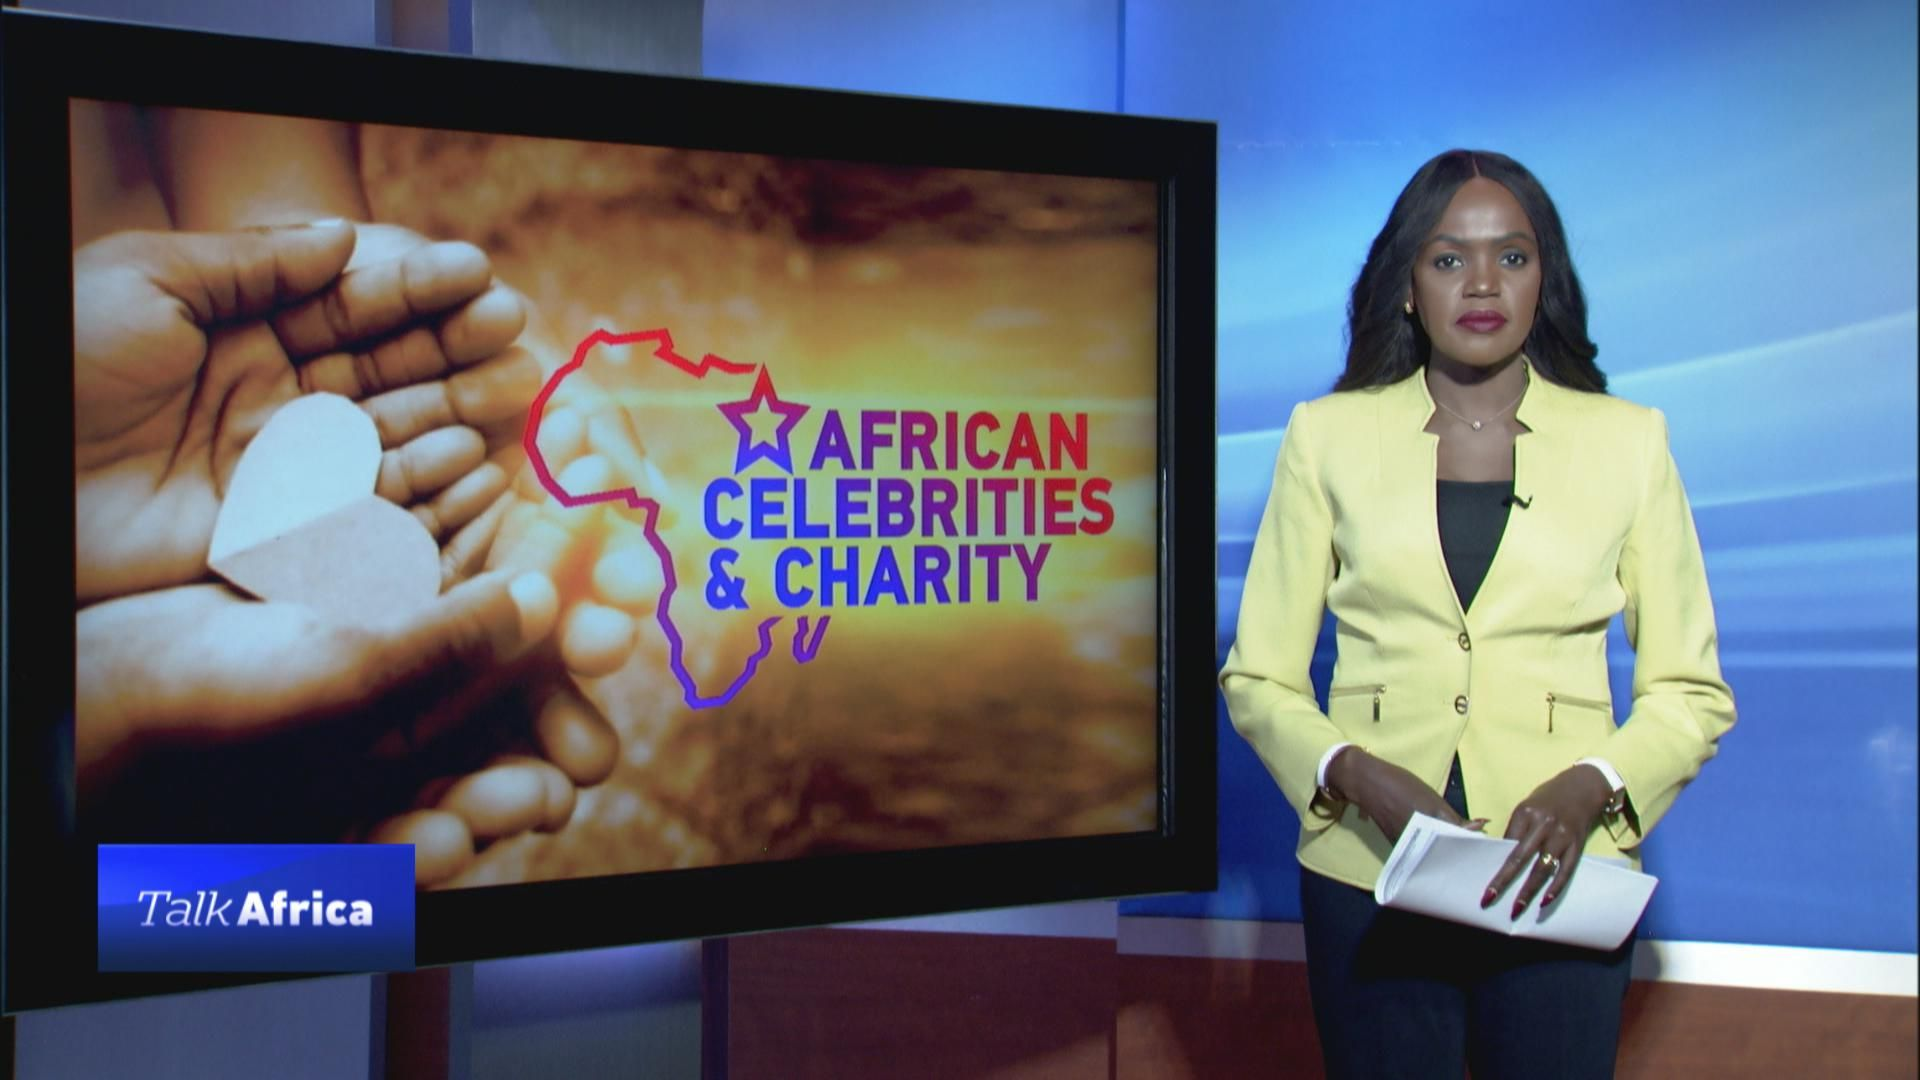 TALK AFRICA 26:10 African celebrities and charity